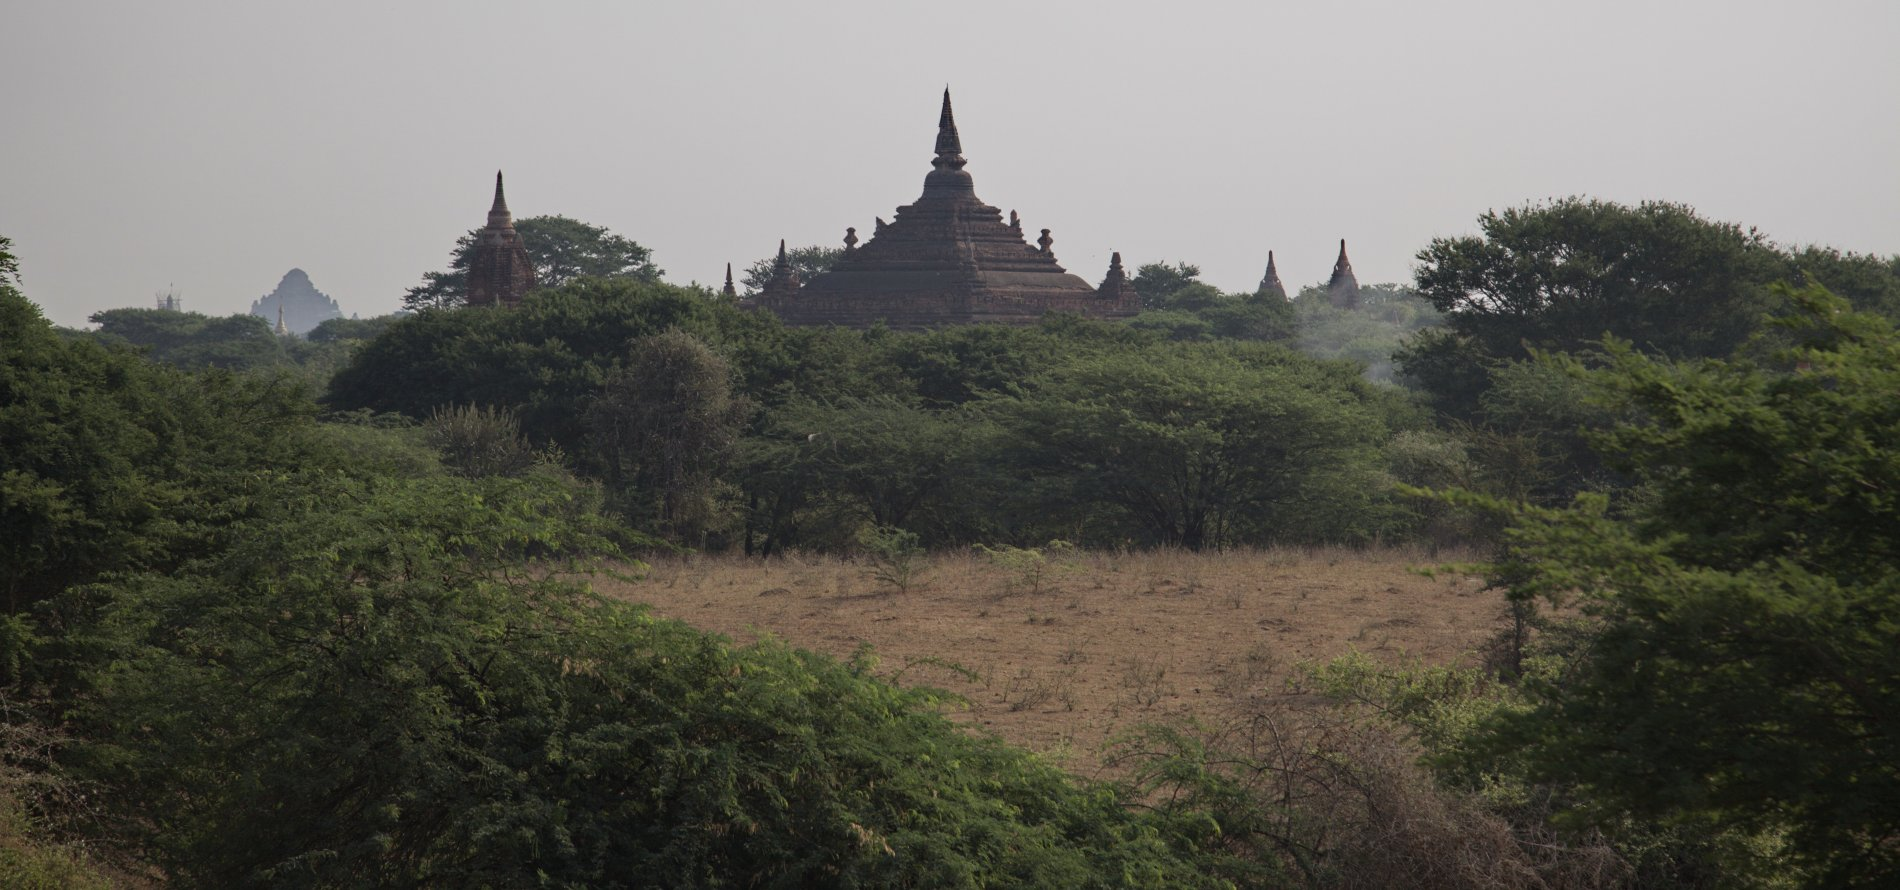 Bagan_203.jpg-commment